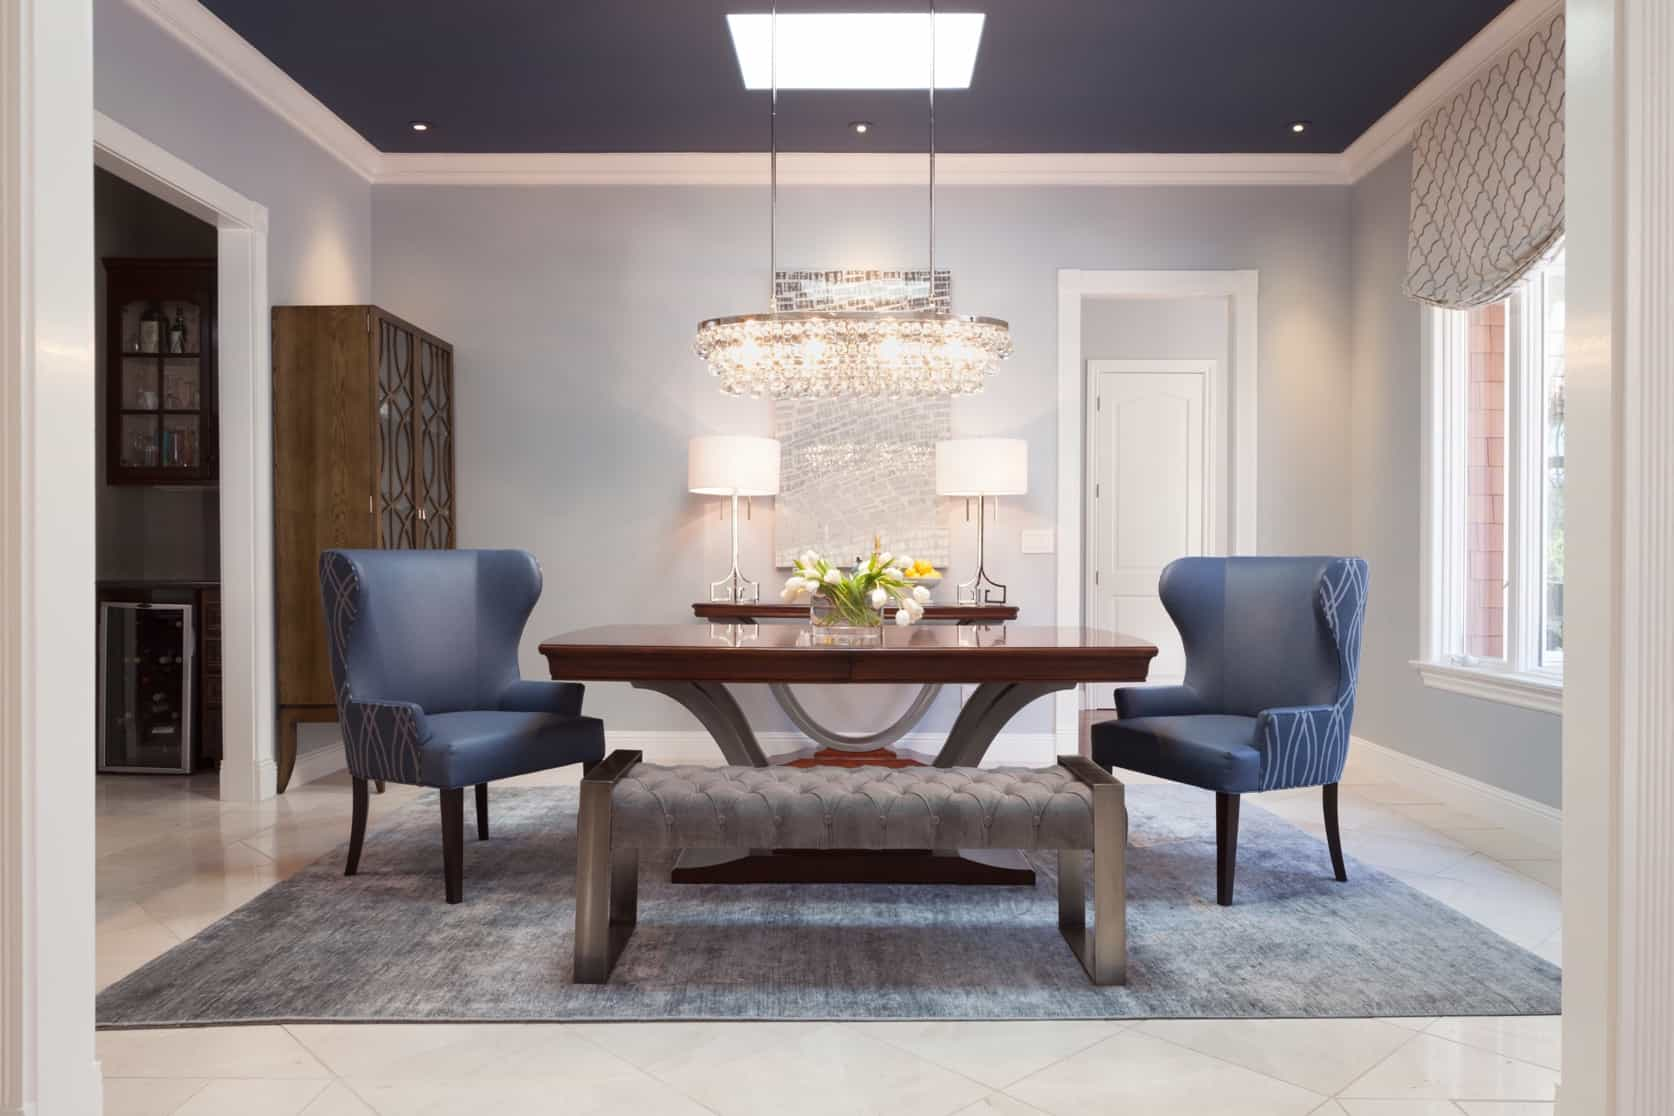 Featured Image of Art Deco Dining Room With Wingback Chairs And Crystal Chandelier